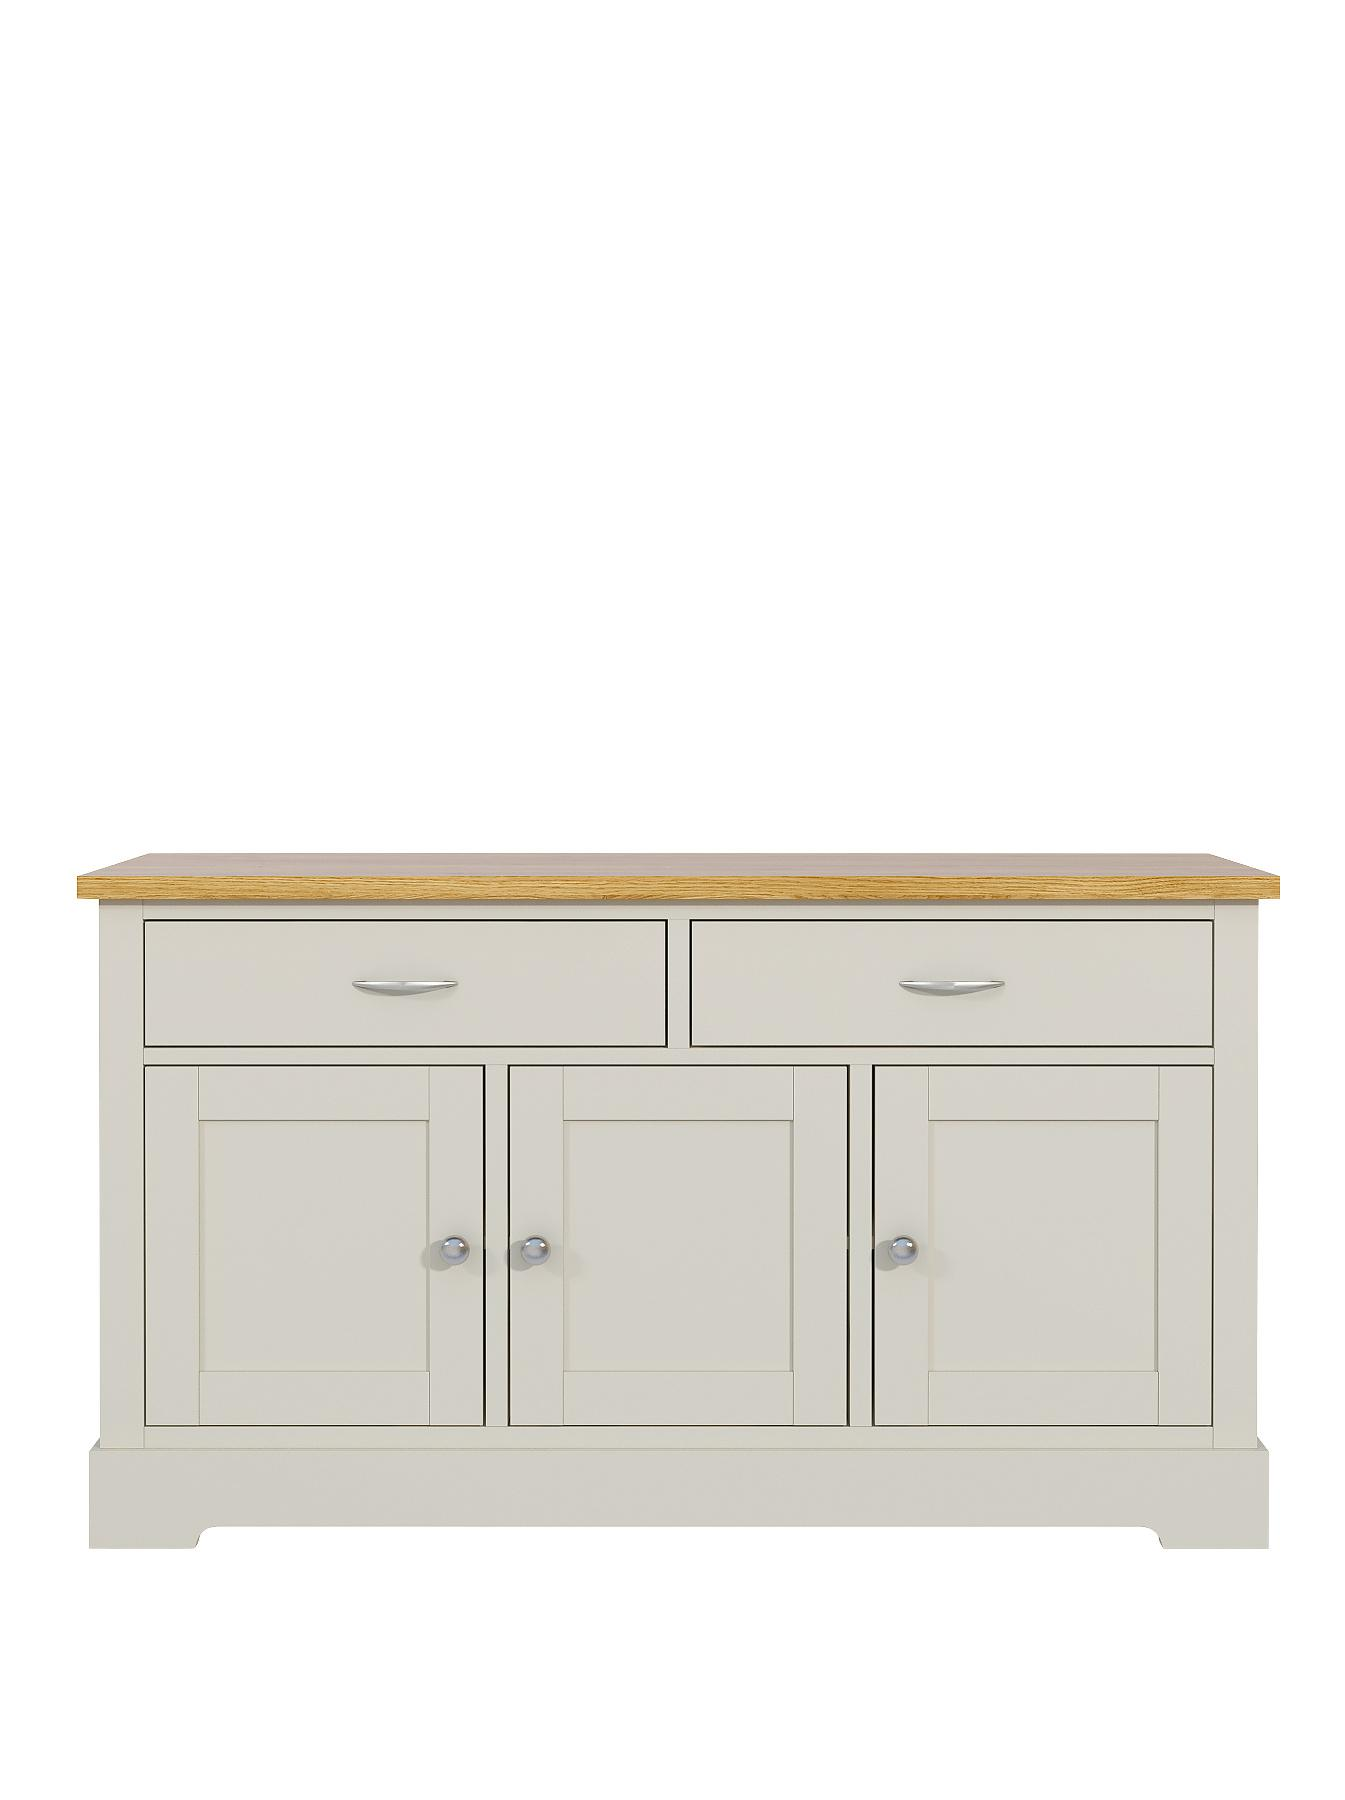 Holsworth Large 3-Door, 2-Drawer Sideboard - Grey, Grey